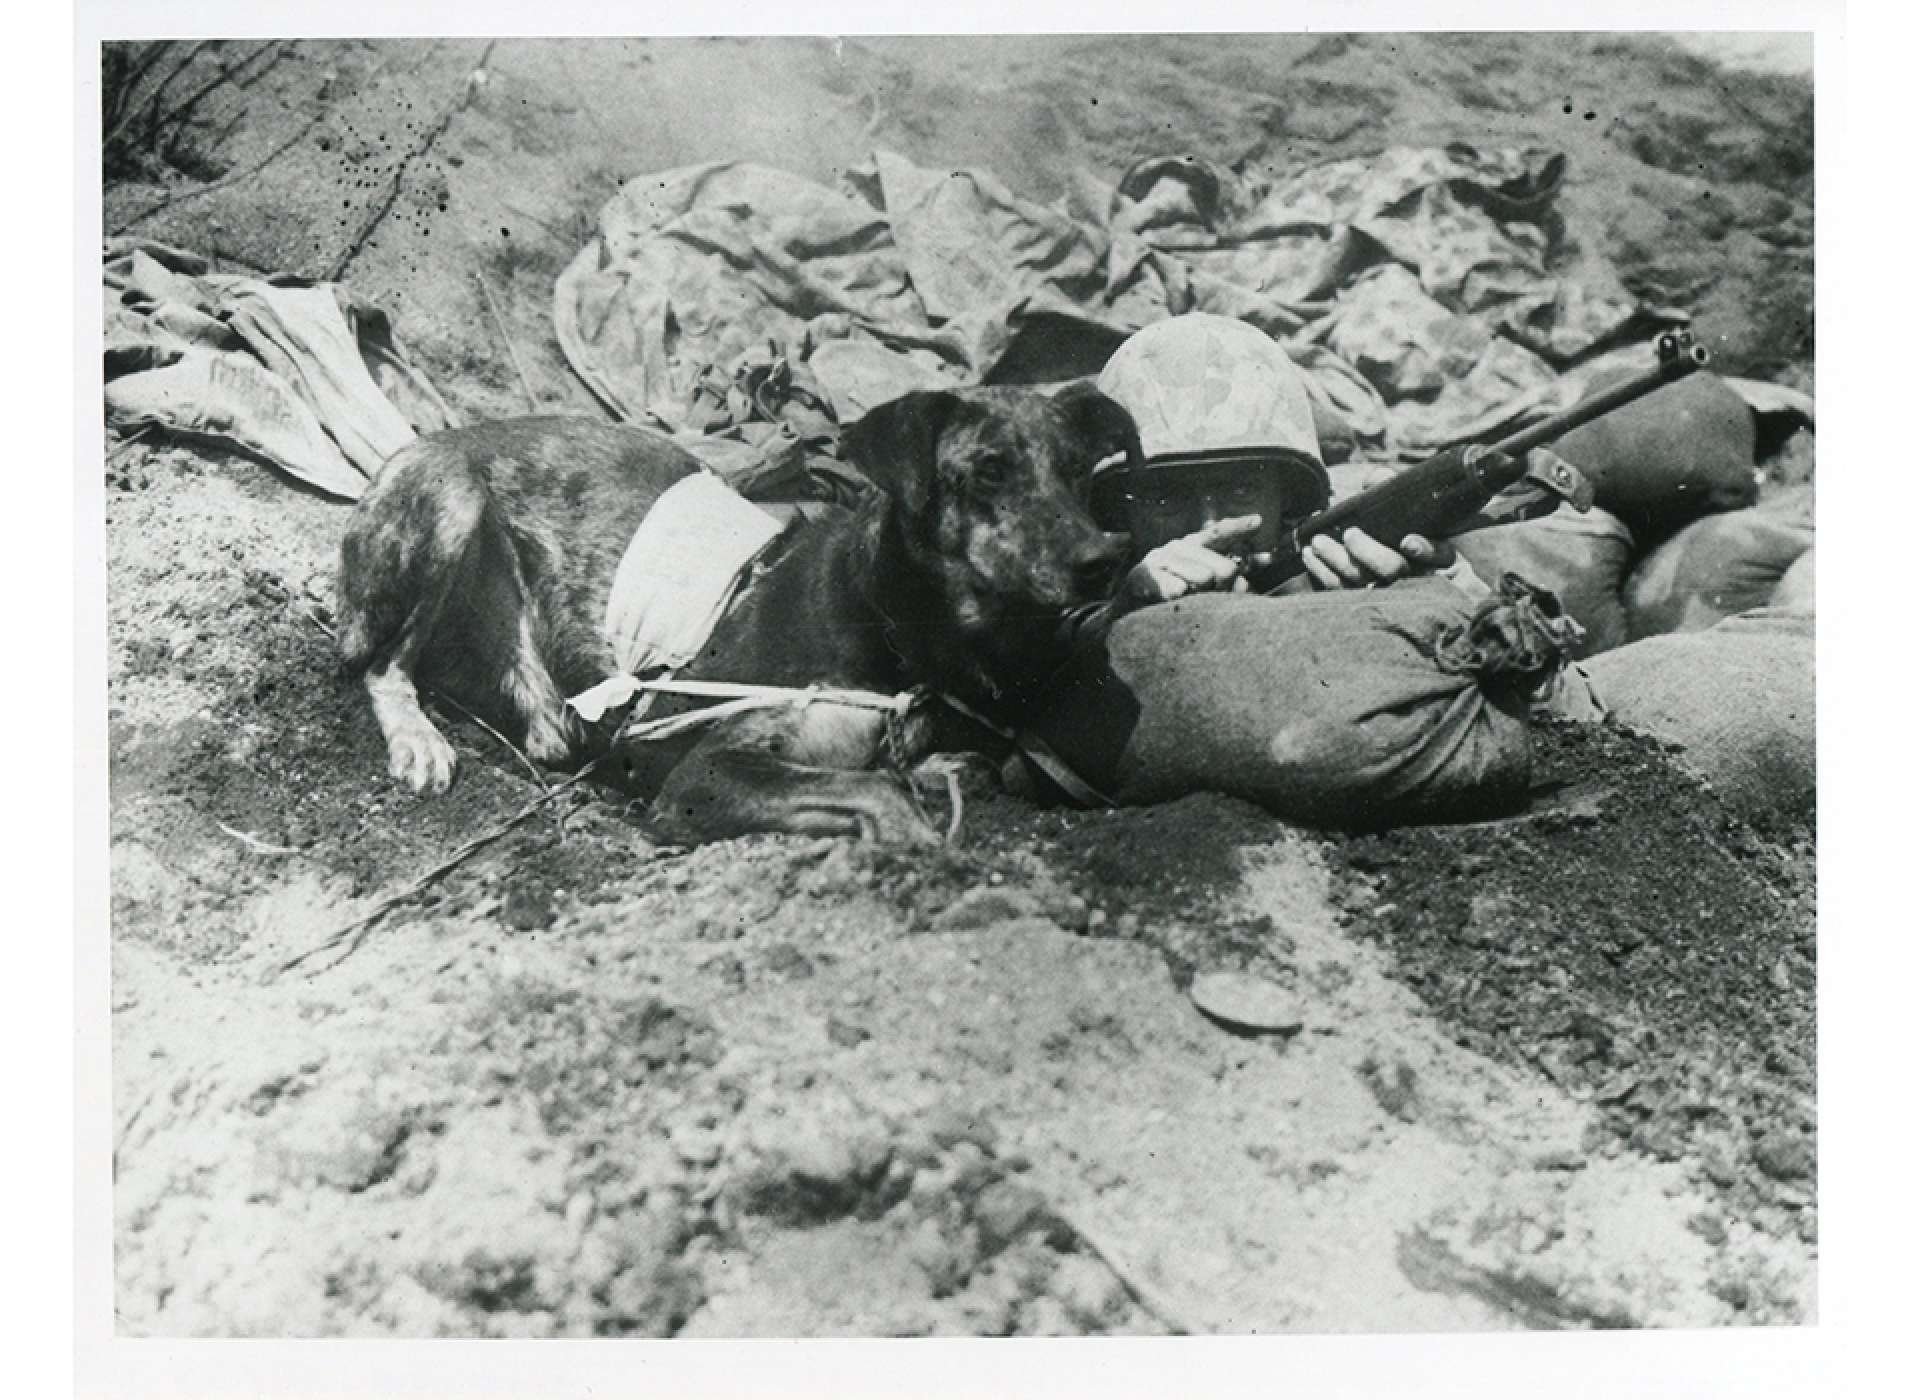 On Iwo Jima, US Marine Cpl. Virgil Burgess instructs his messenger dog, Prince. Notice the special messenger pouch Prince wears to deliver messages. National Archives photo.